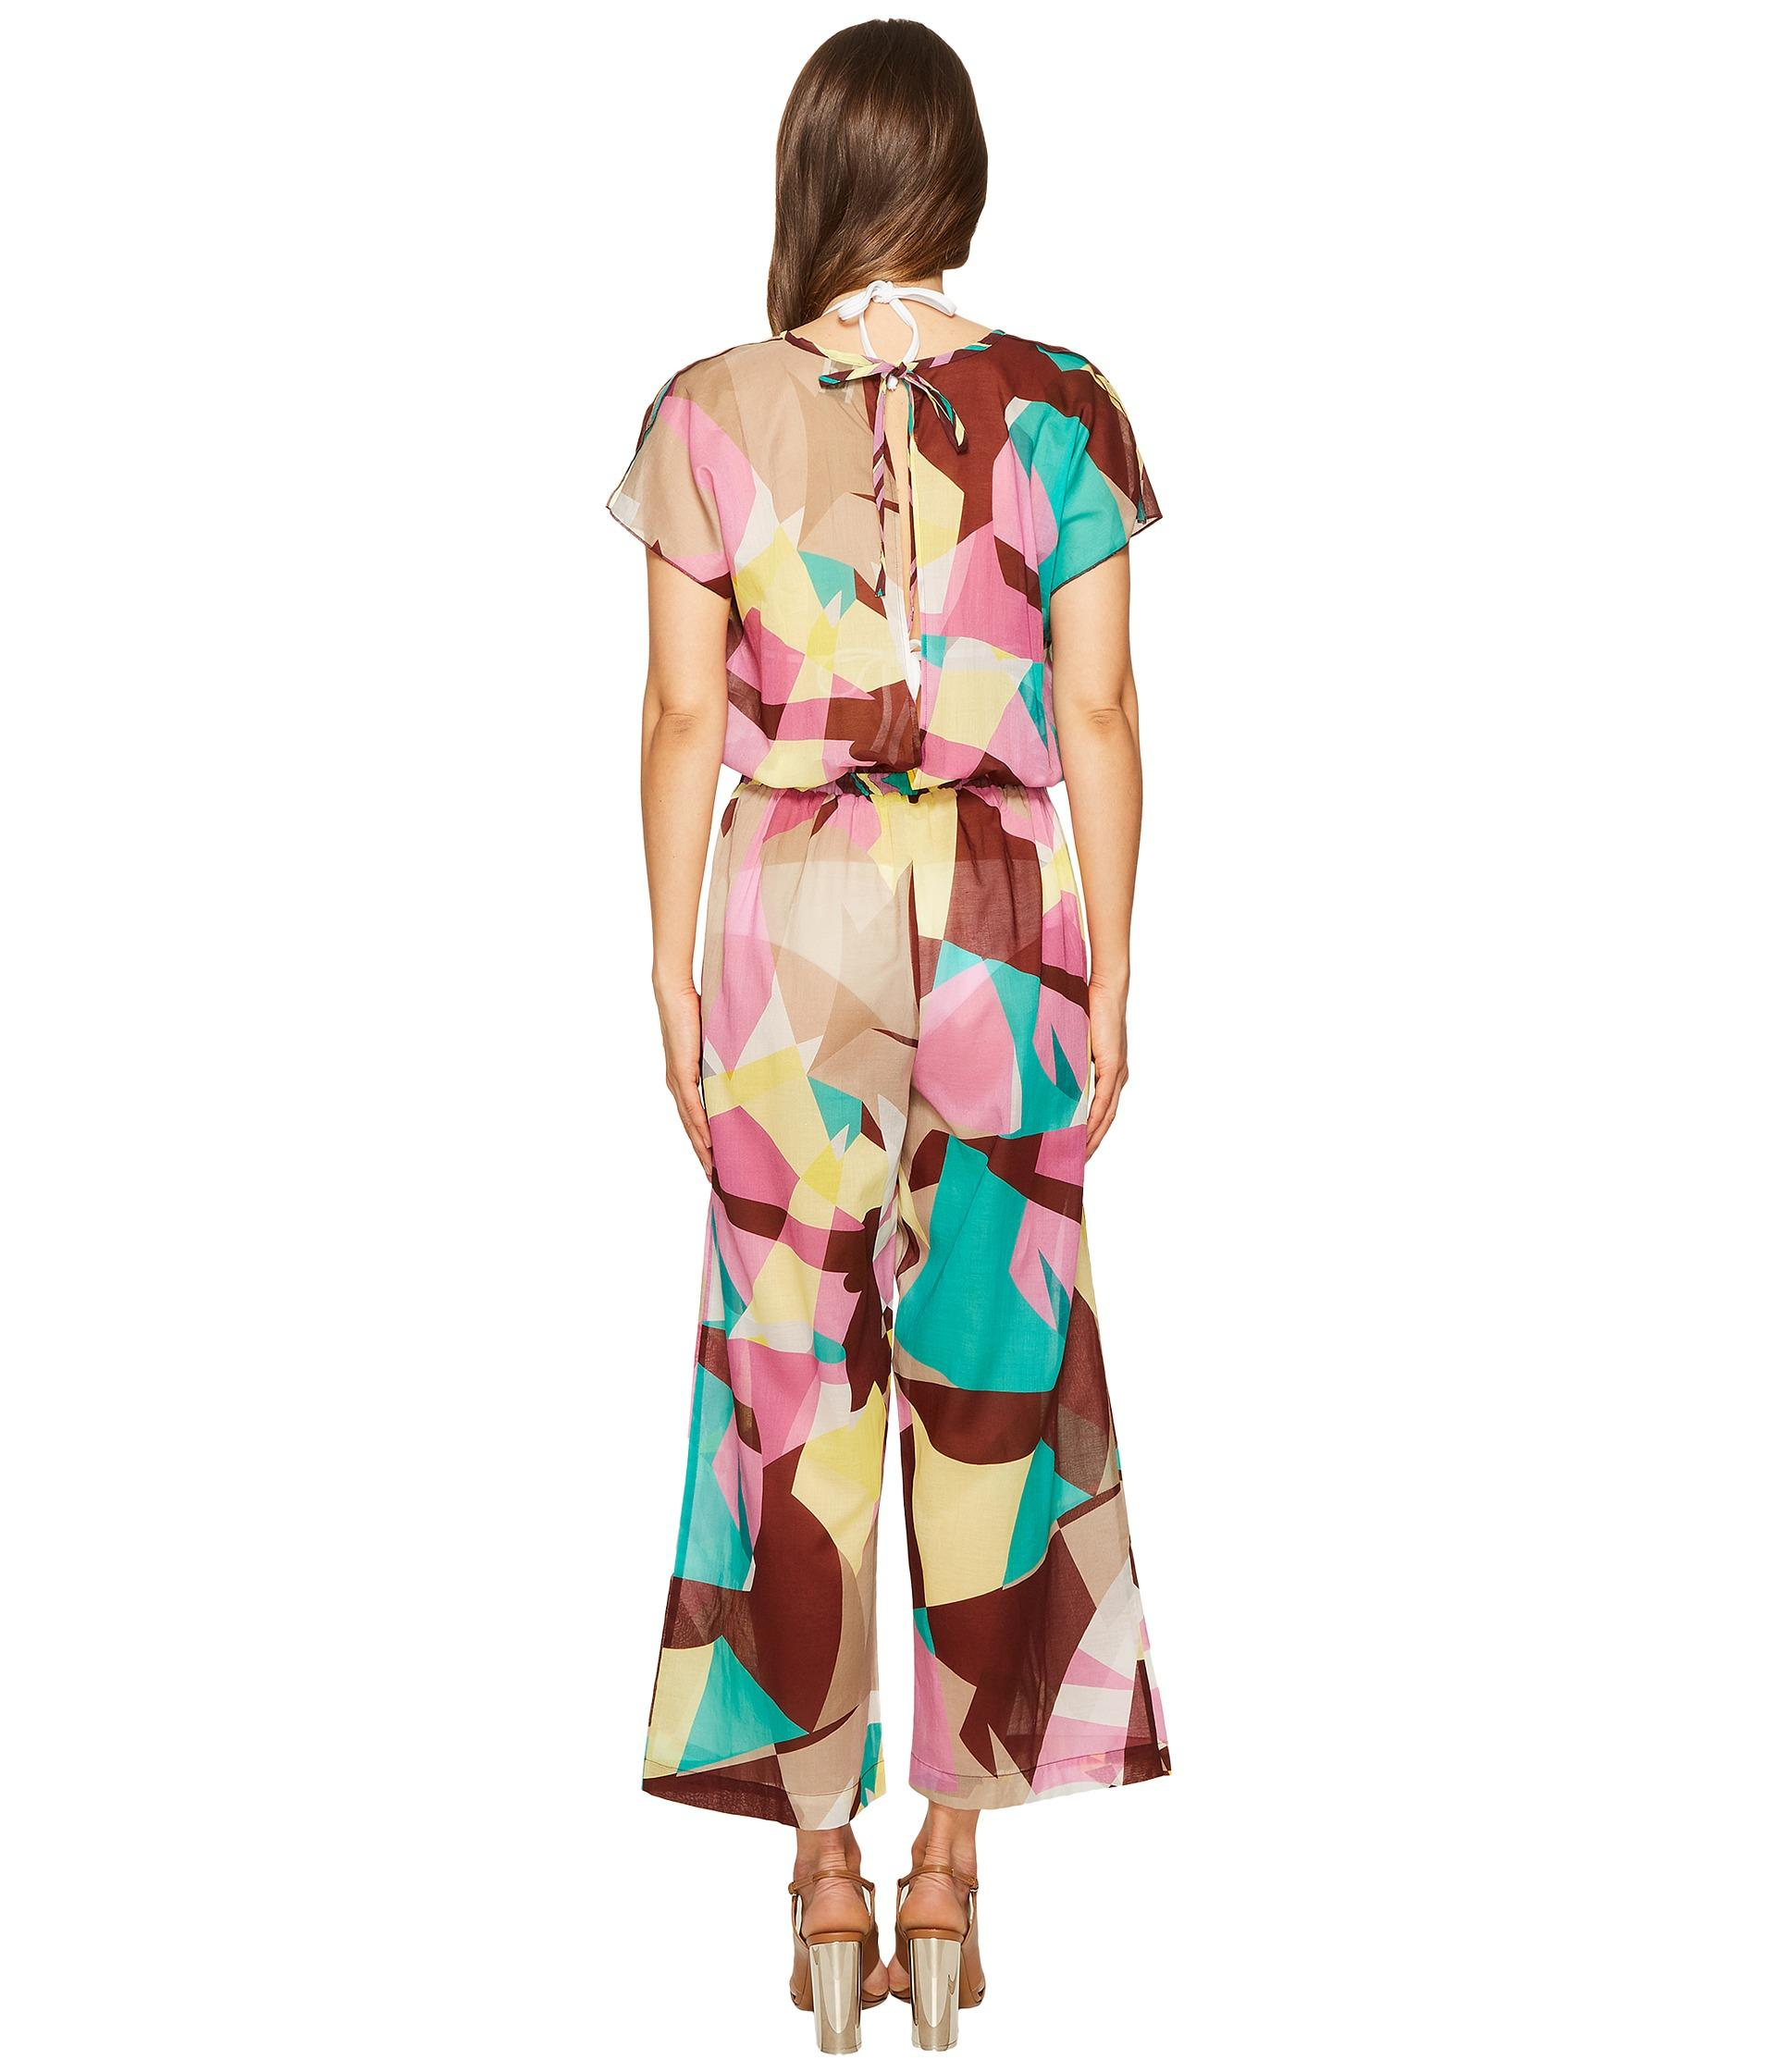 2690b6851a6 Lyst - M Missoni Abstract Print Cotton Voile Jumpsuit